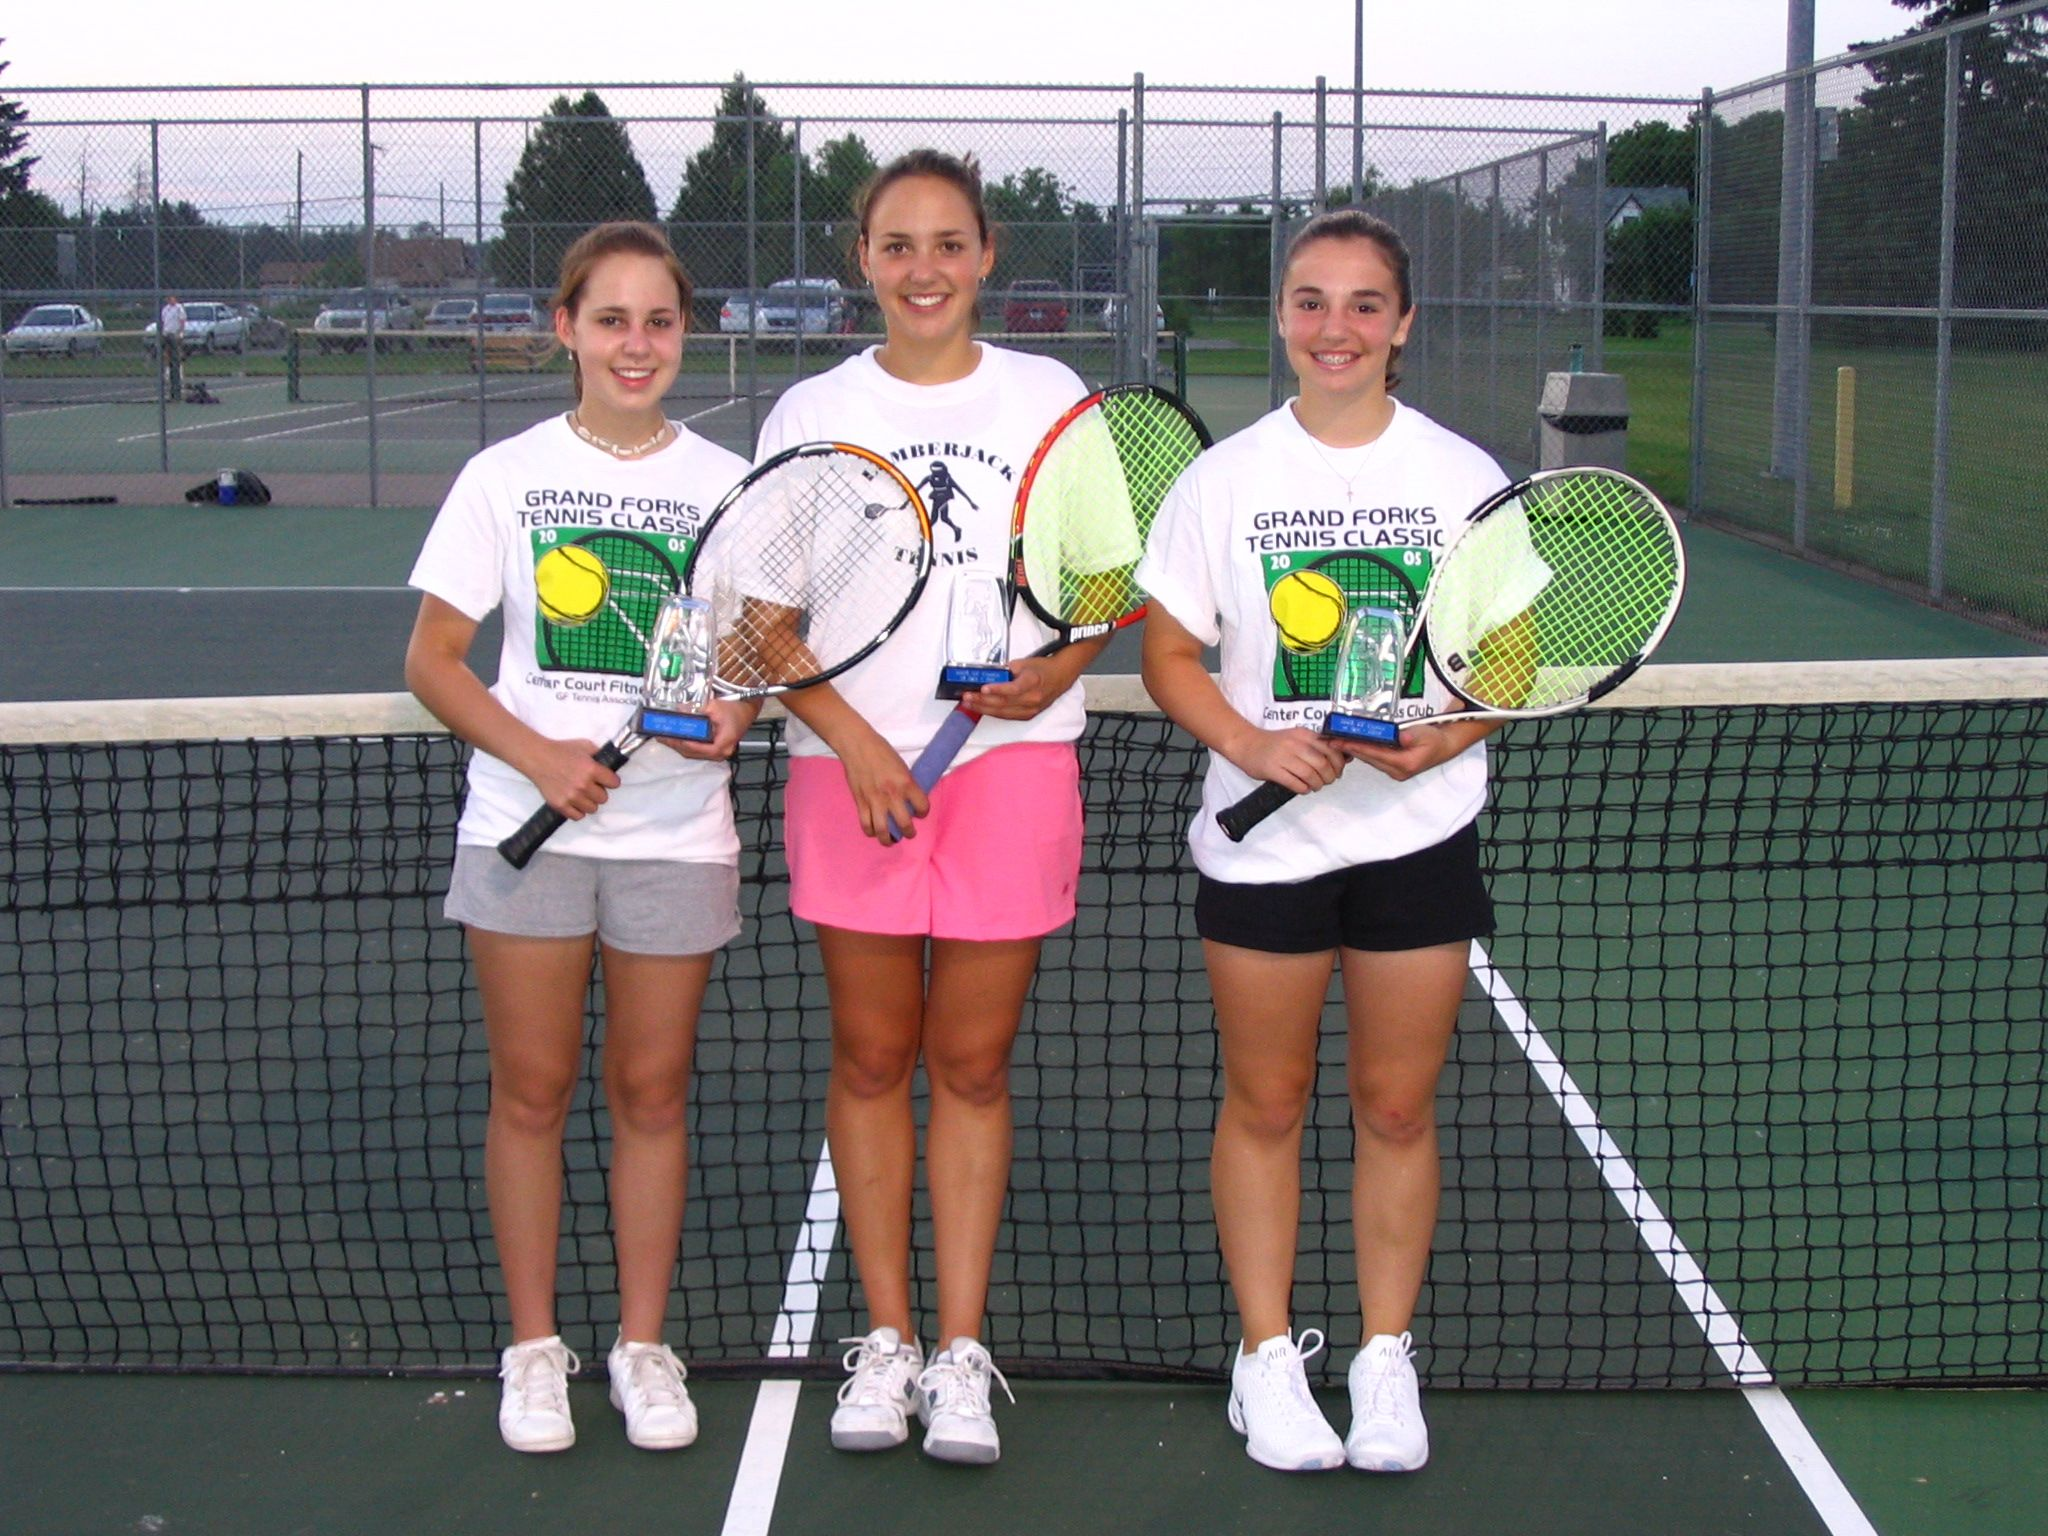 2005 Grand Forks Tennis Classic